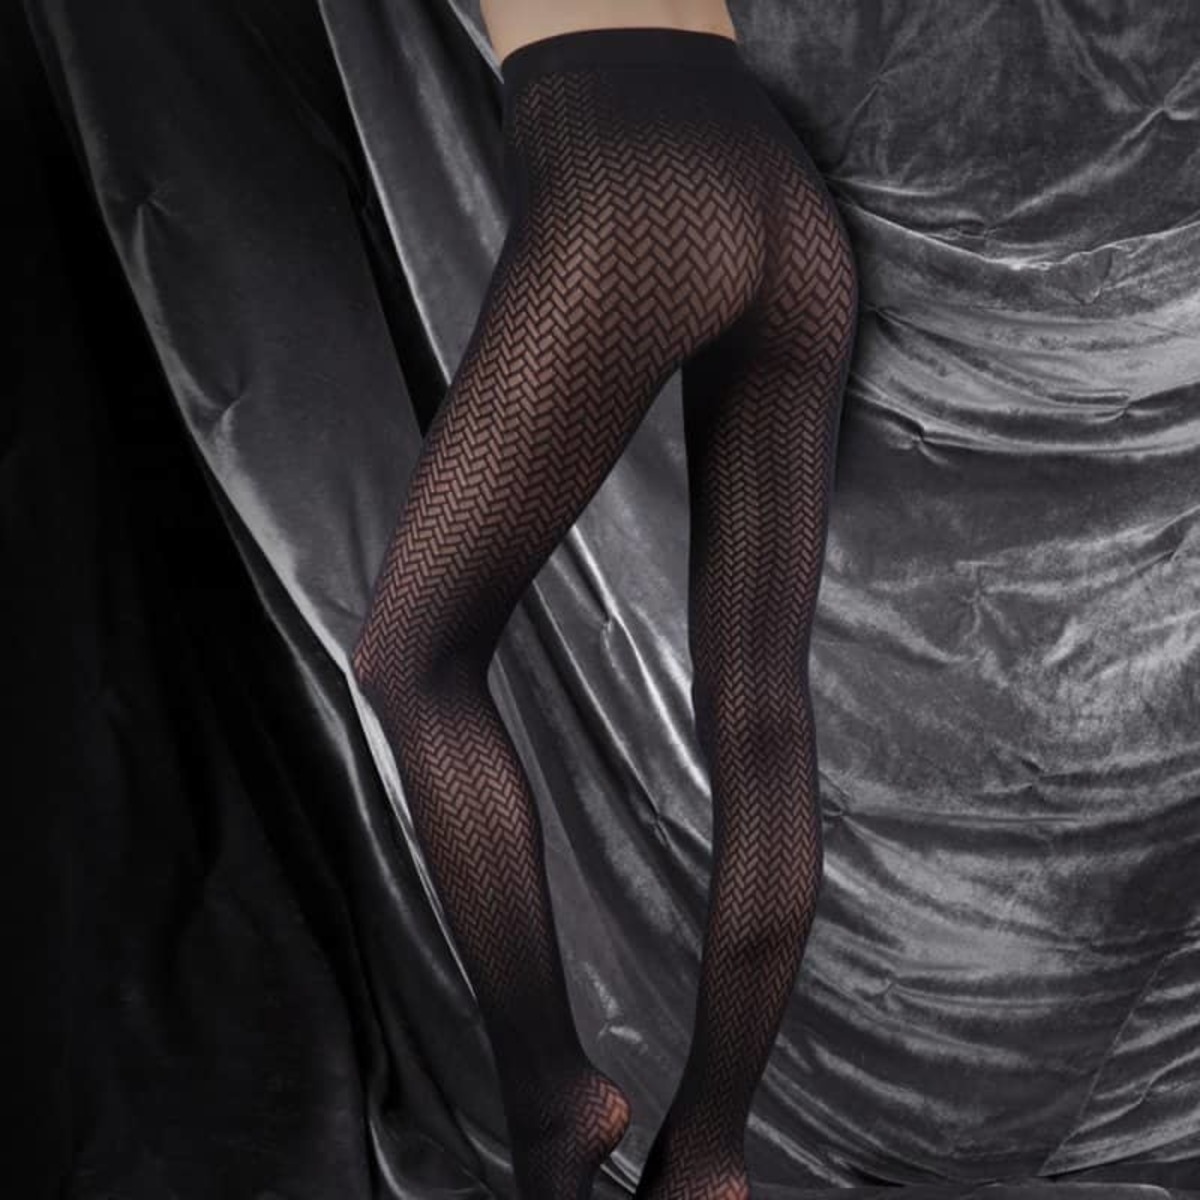 punčocháče LEGWEAR - couture ultimates - the catherine - black - CS008